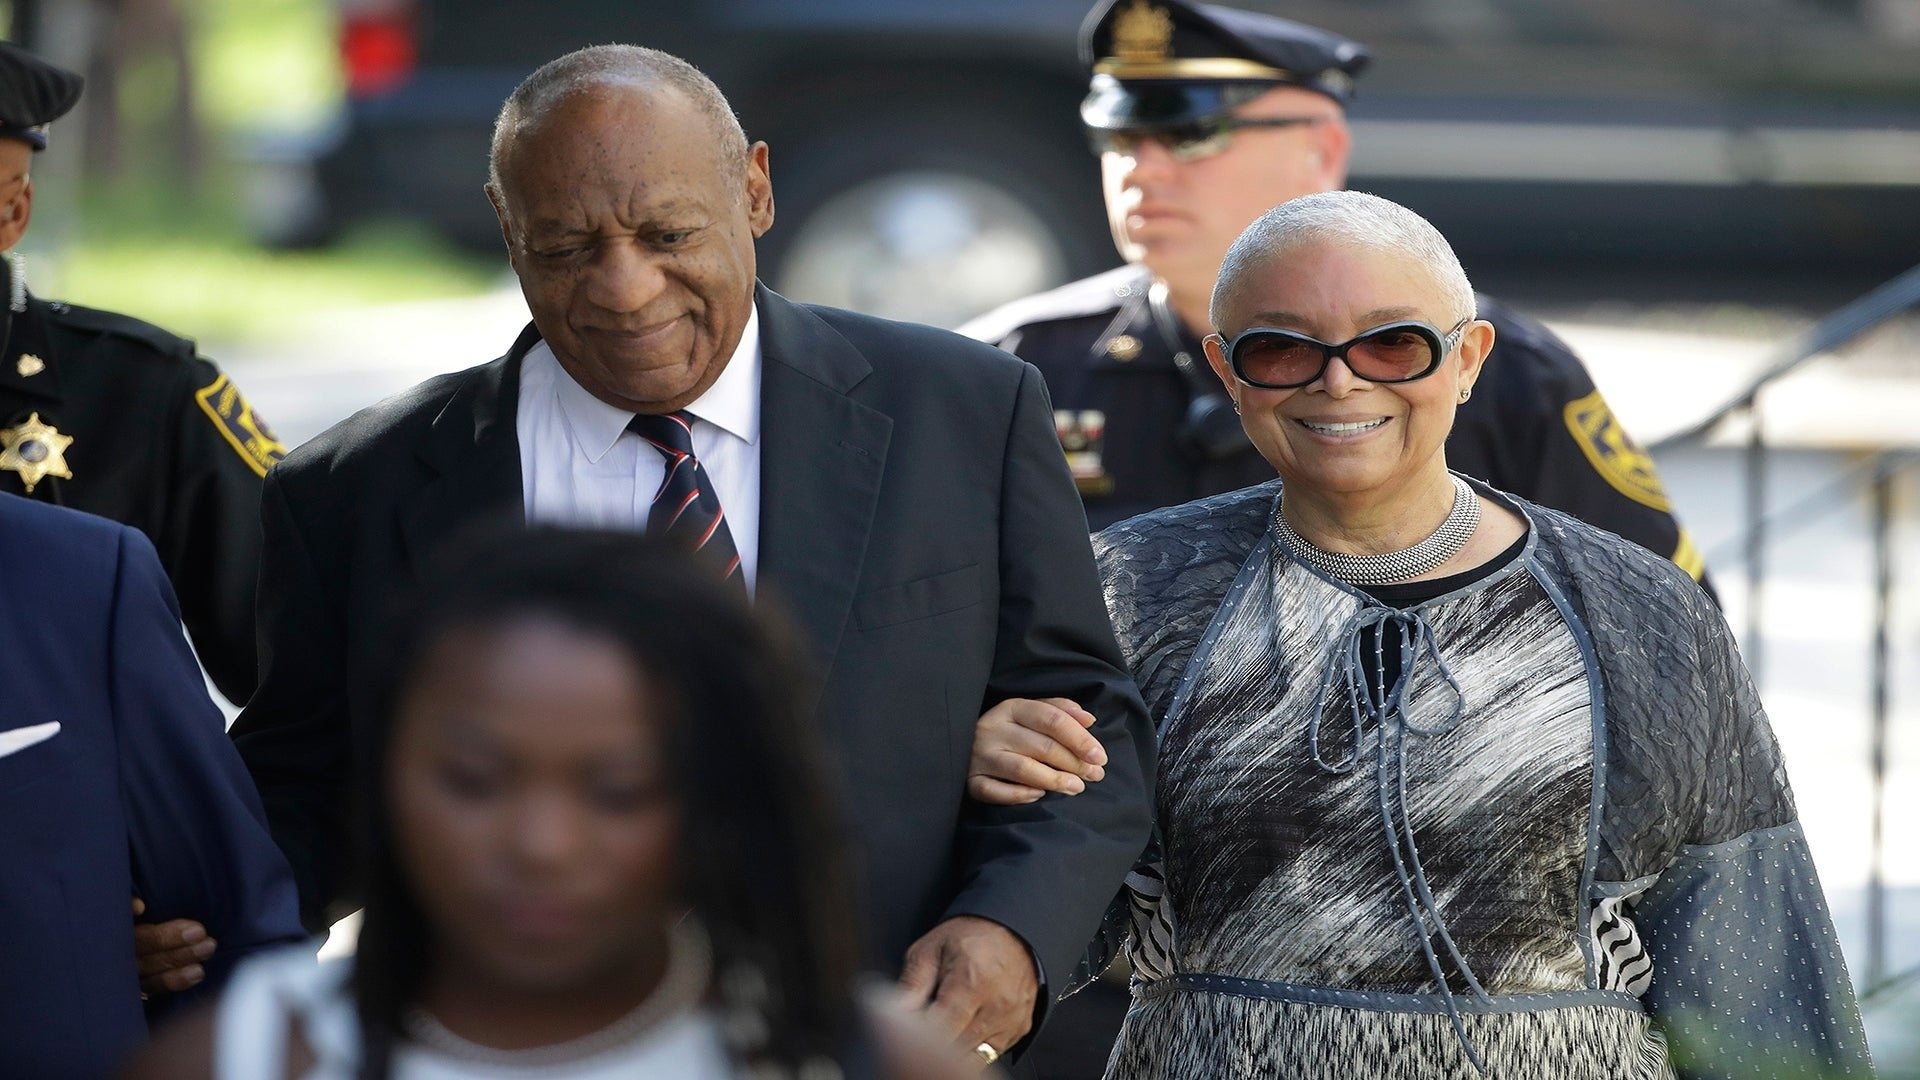 Camille Cosby Suggests Me Too Movement Is Racist